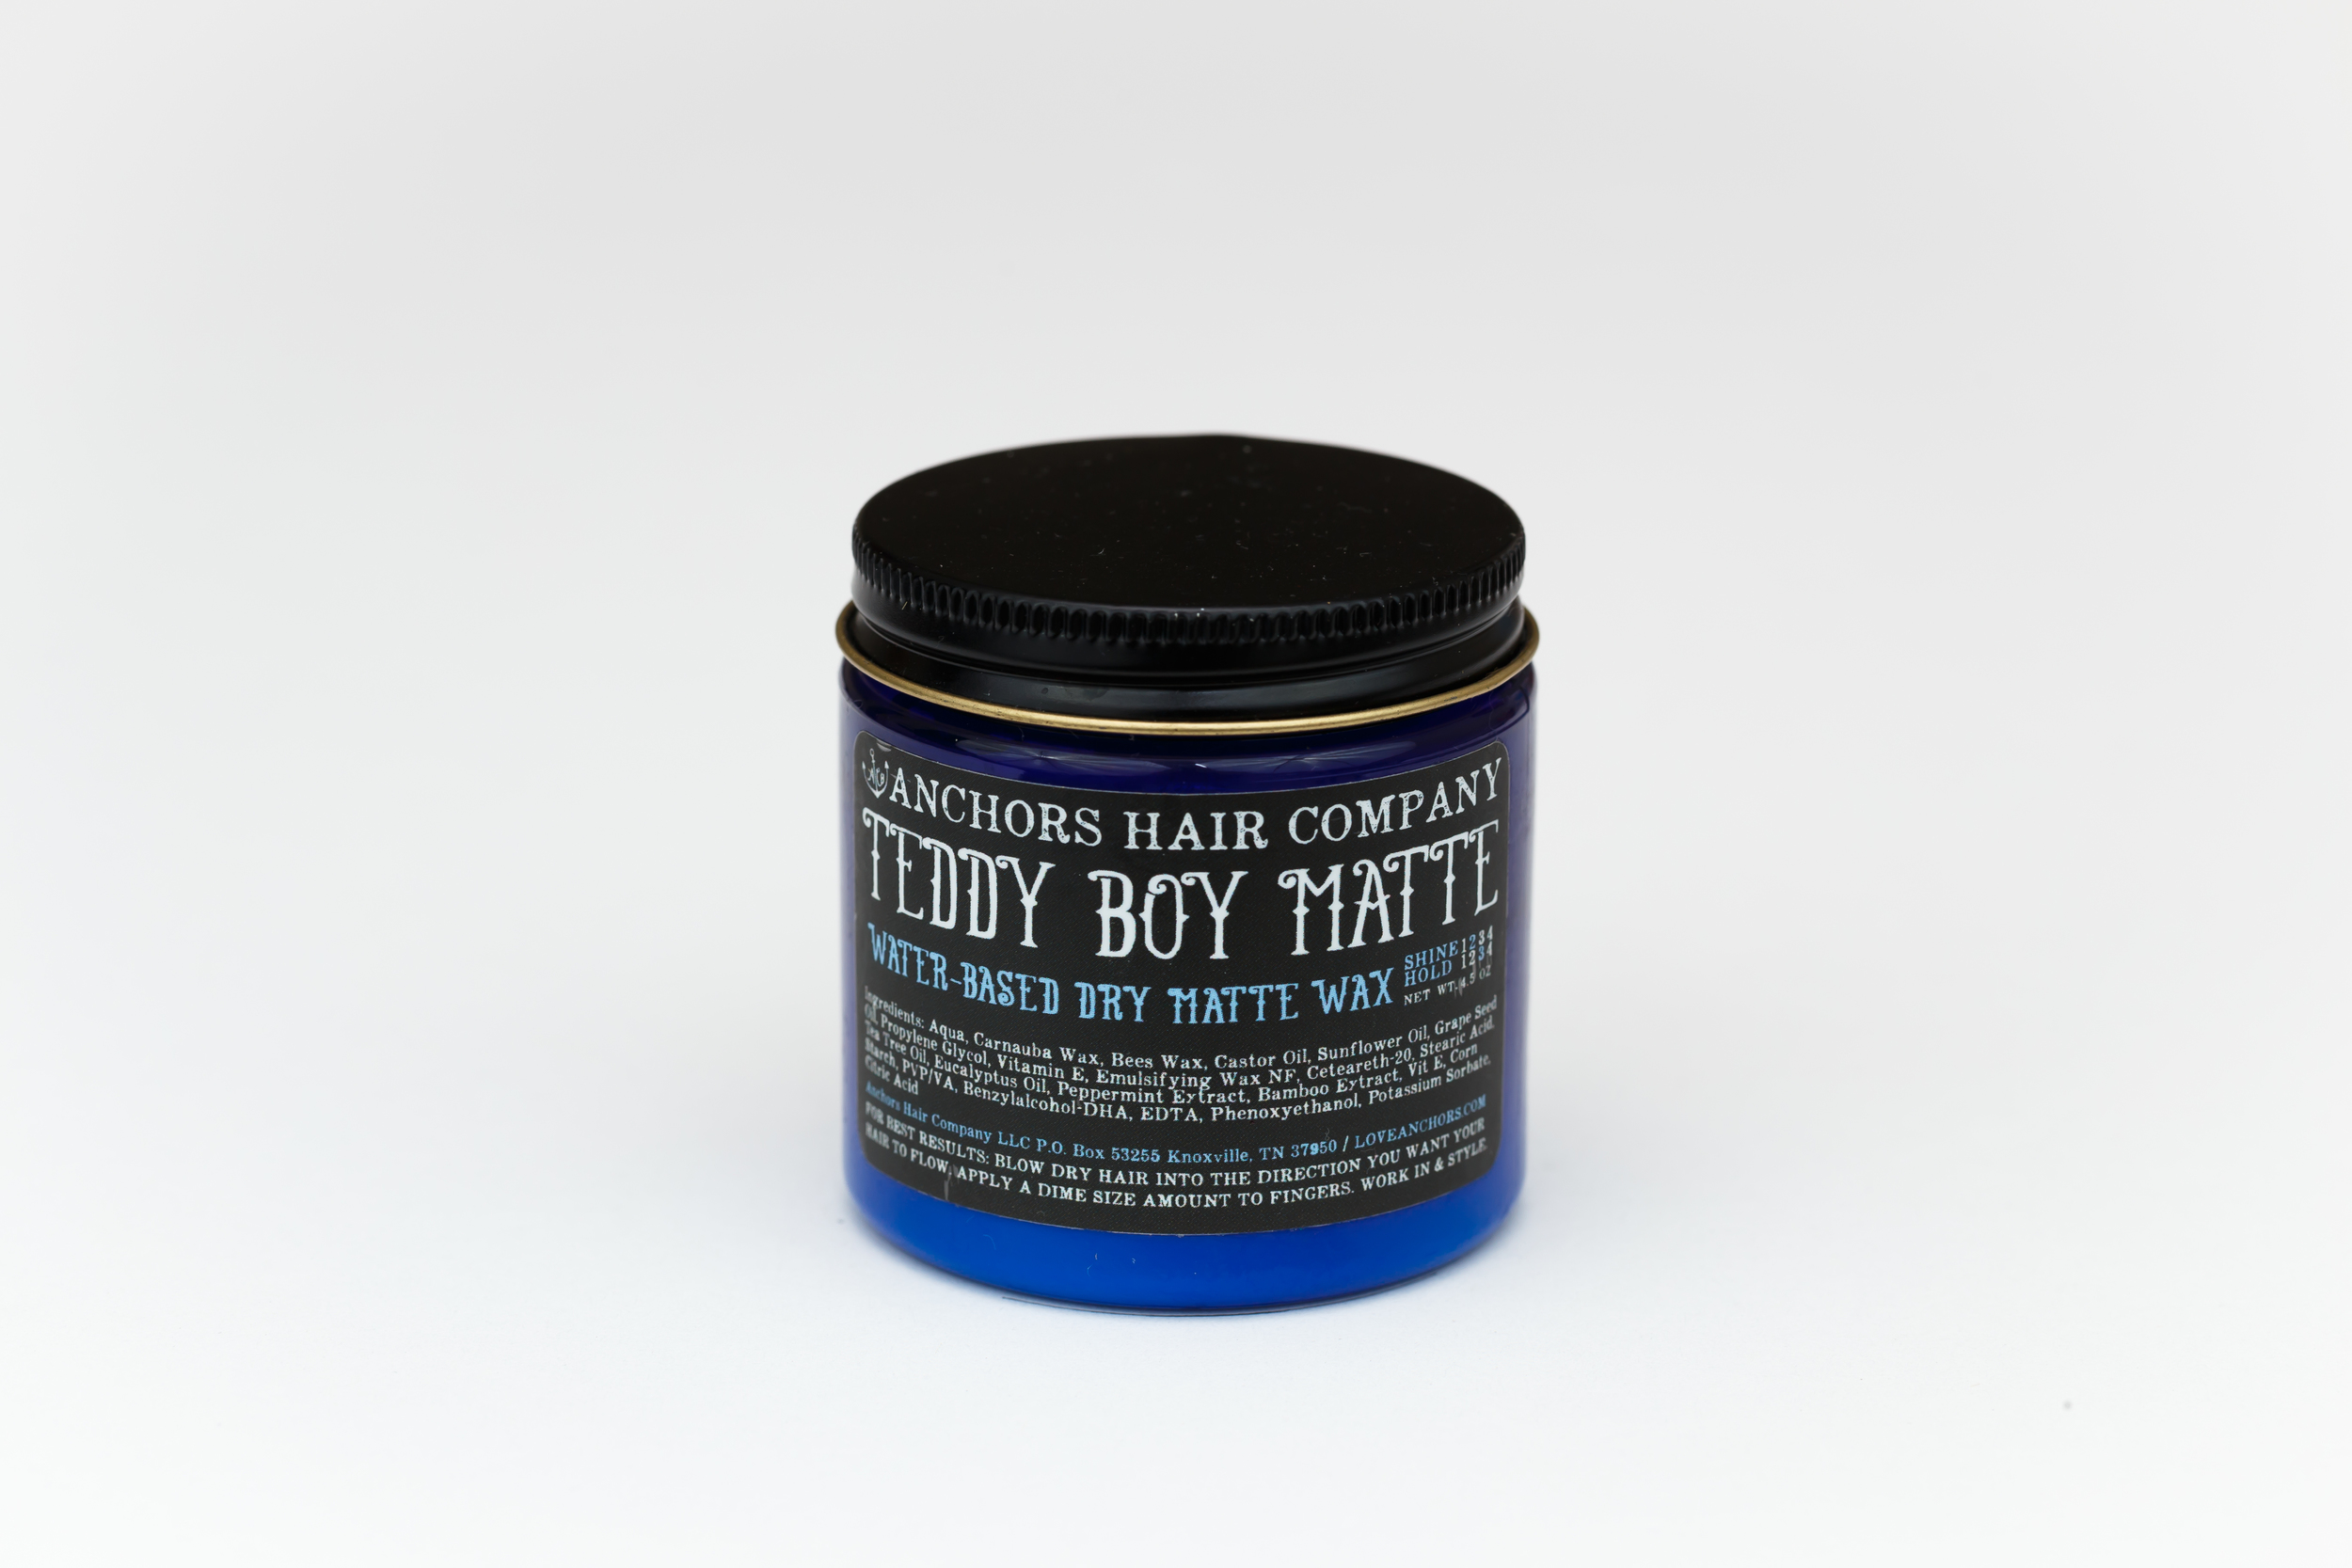 Anchors Teddy Boy Matte -- $16.50 with promo code THEPOMP